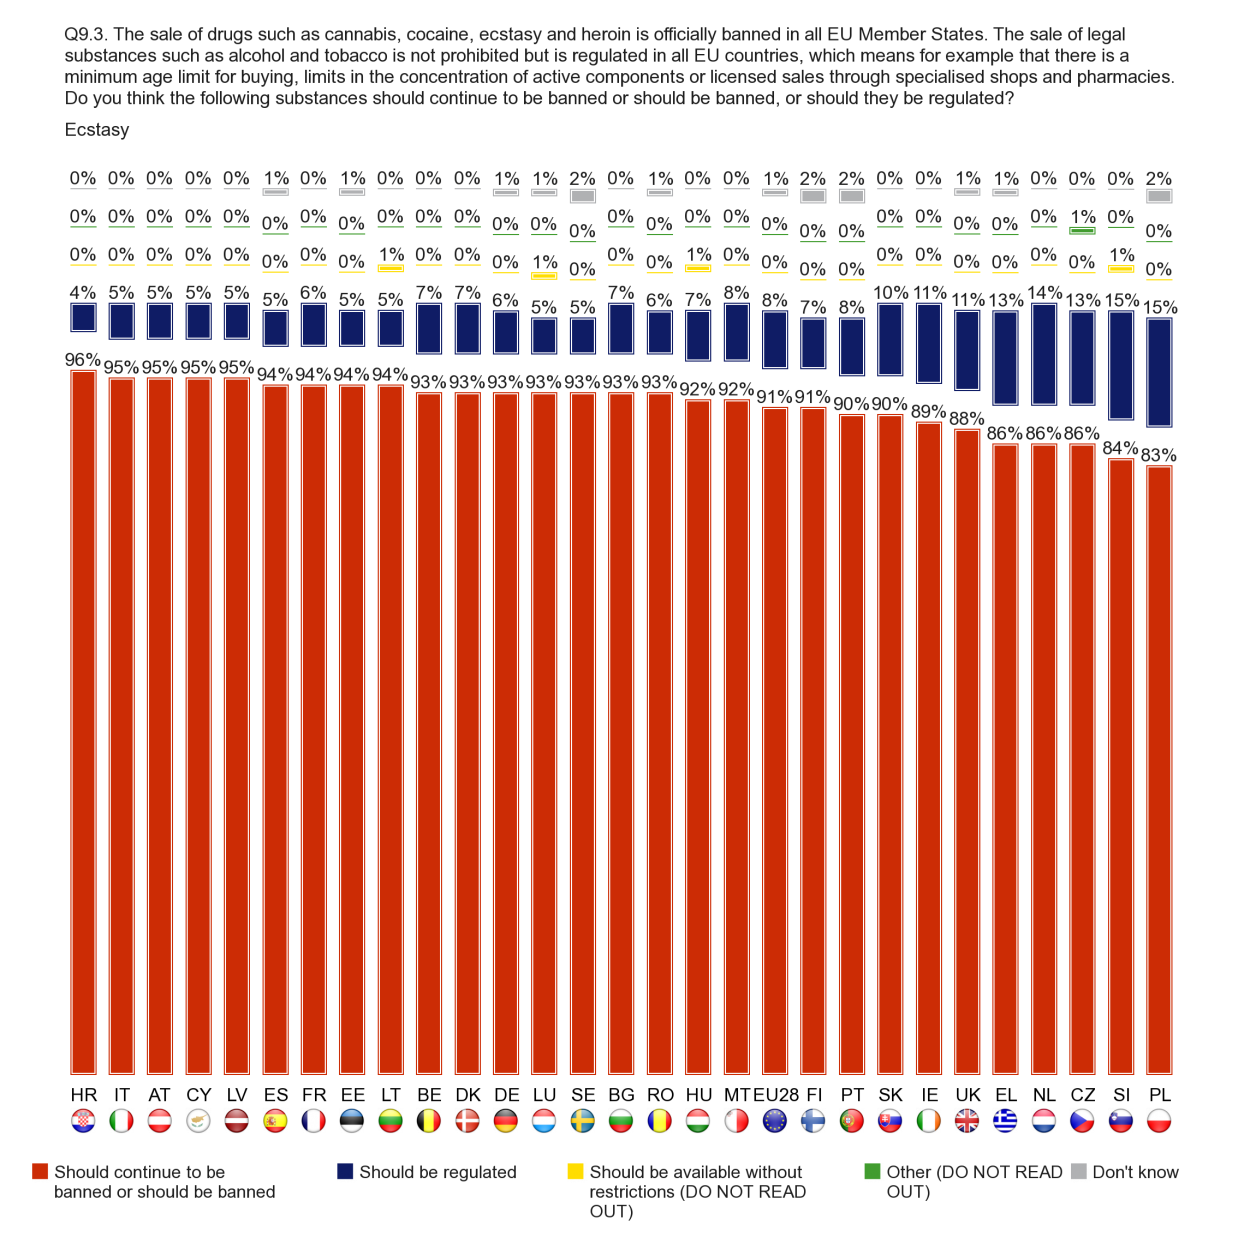 FLASH EUROBAROMETER At least eight out of ten respondents in each Member State think that ecstasy should continue to be banned, ranging from 96% of respondents in Croatia and 95% in Italy, Austria,